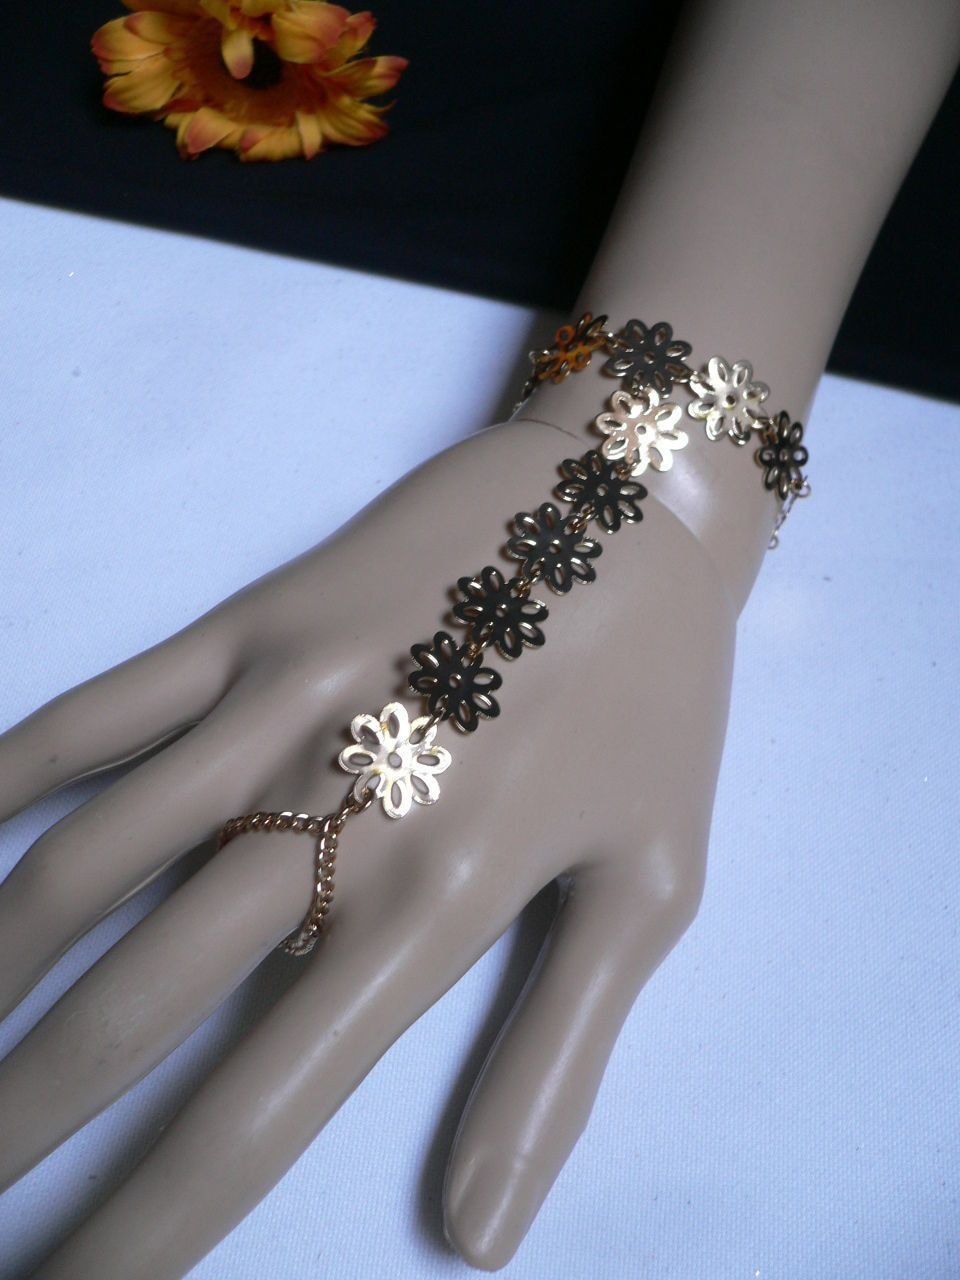 New women gold flowers hand links chain fashion slave bracelet wrist